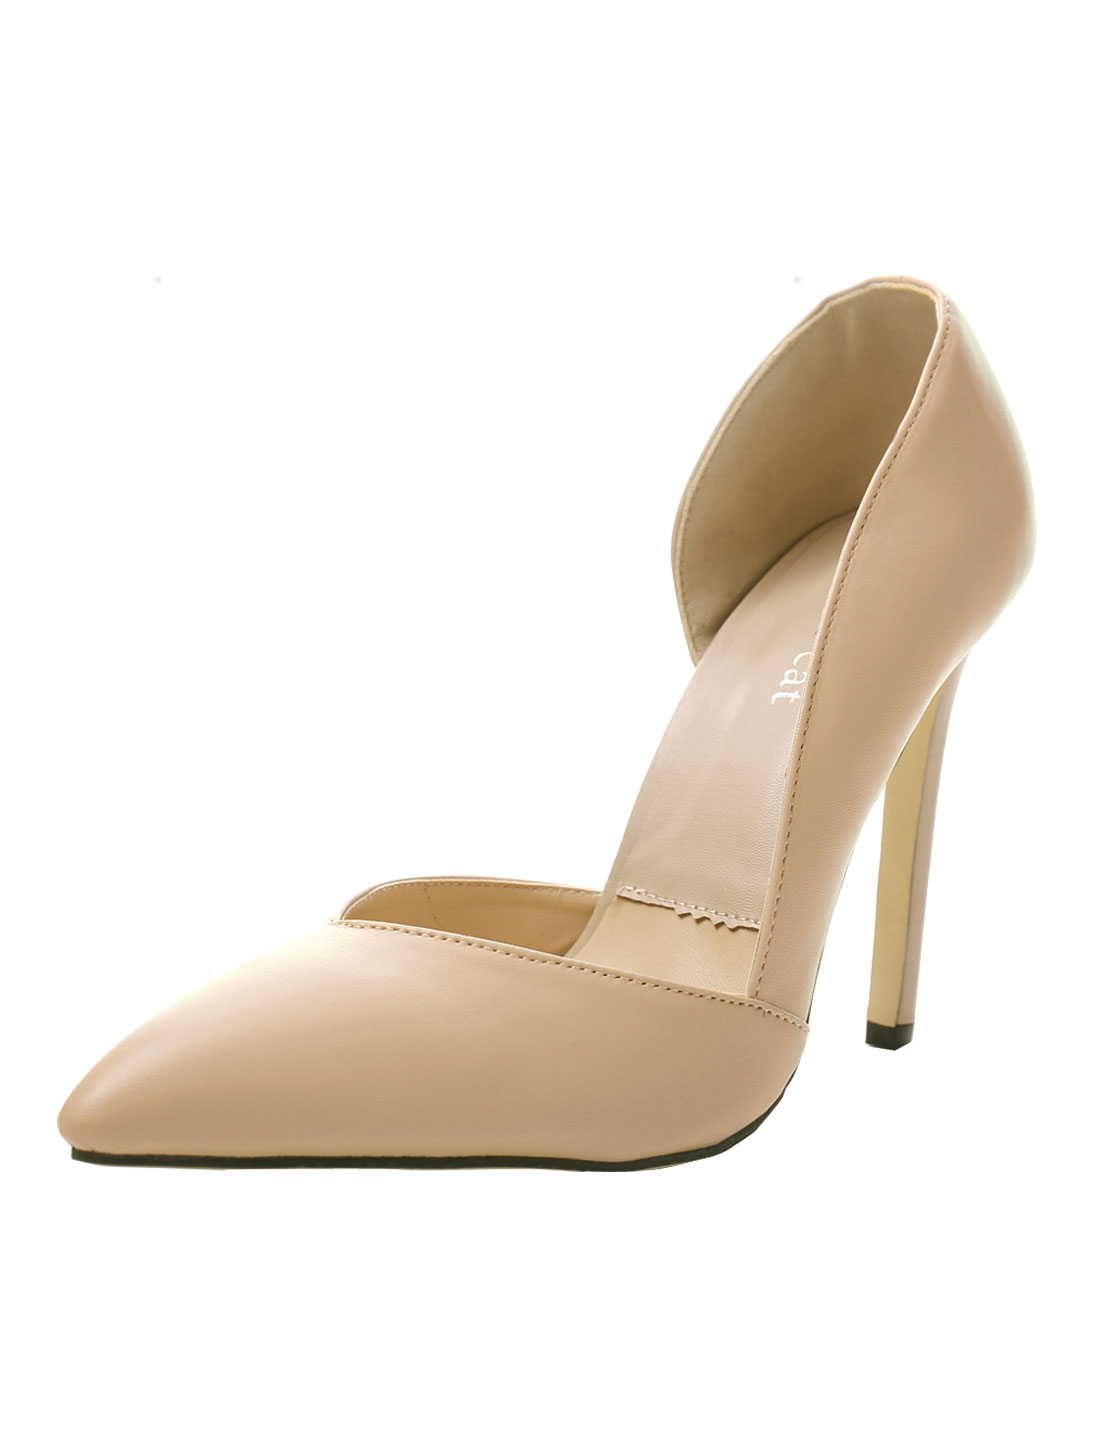 Women Cut Out Side Pointed Toe Stiletto Summer High Heels Beige US 8